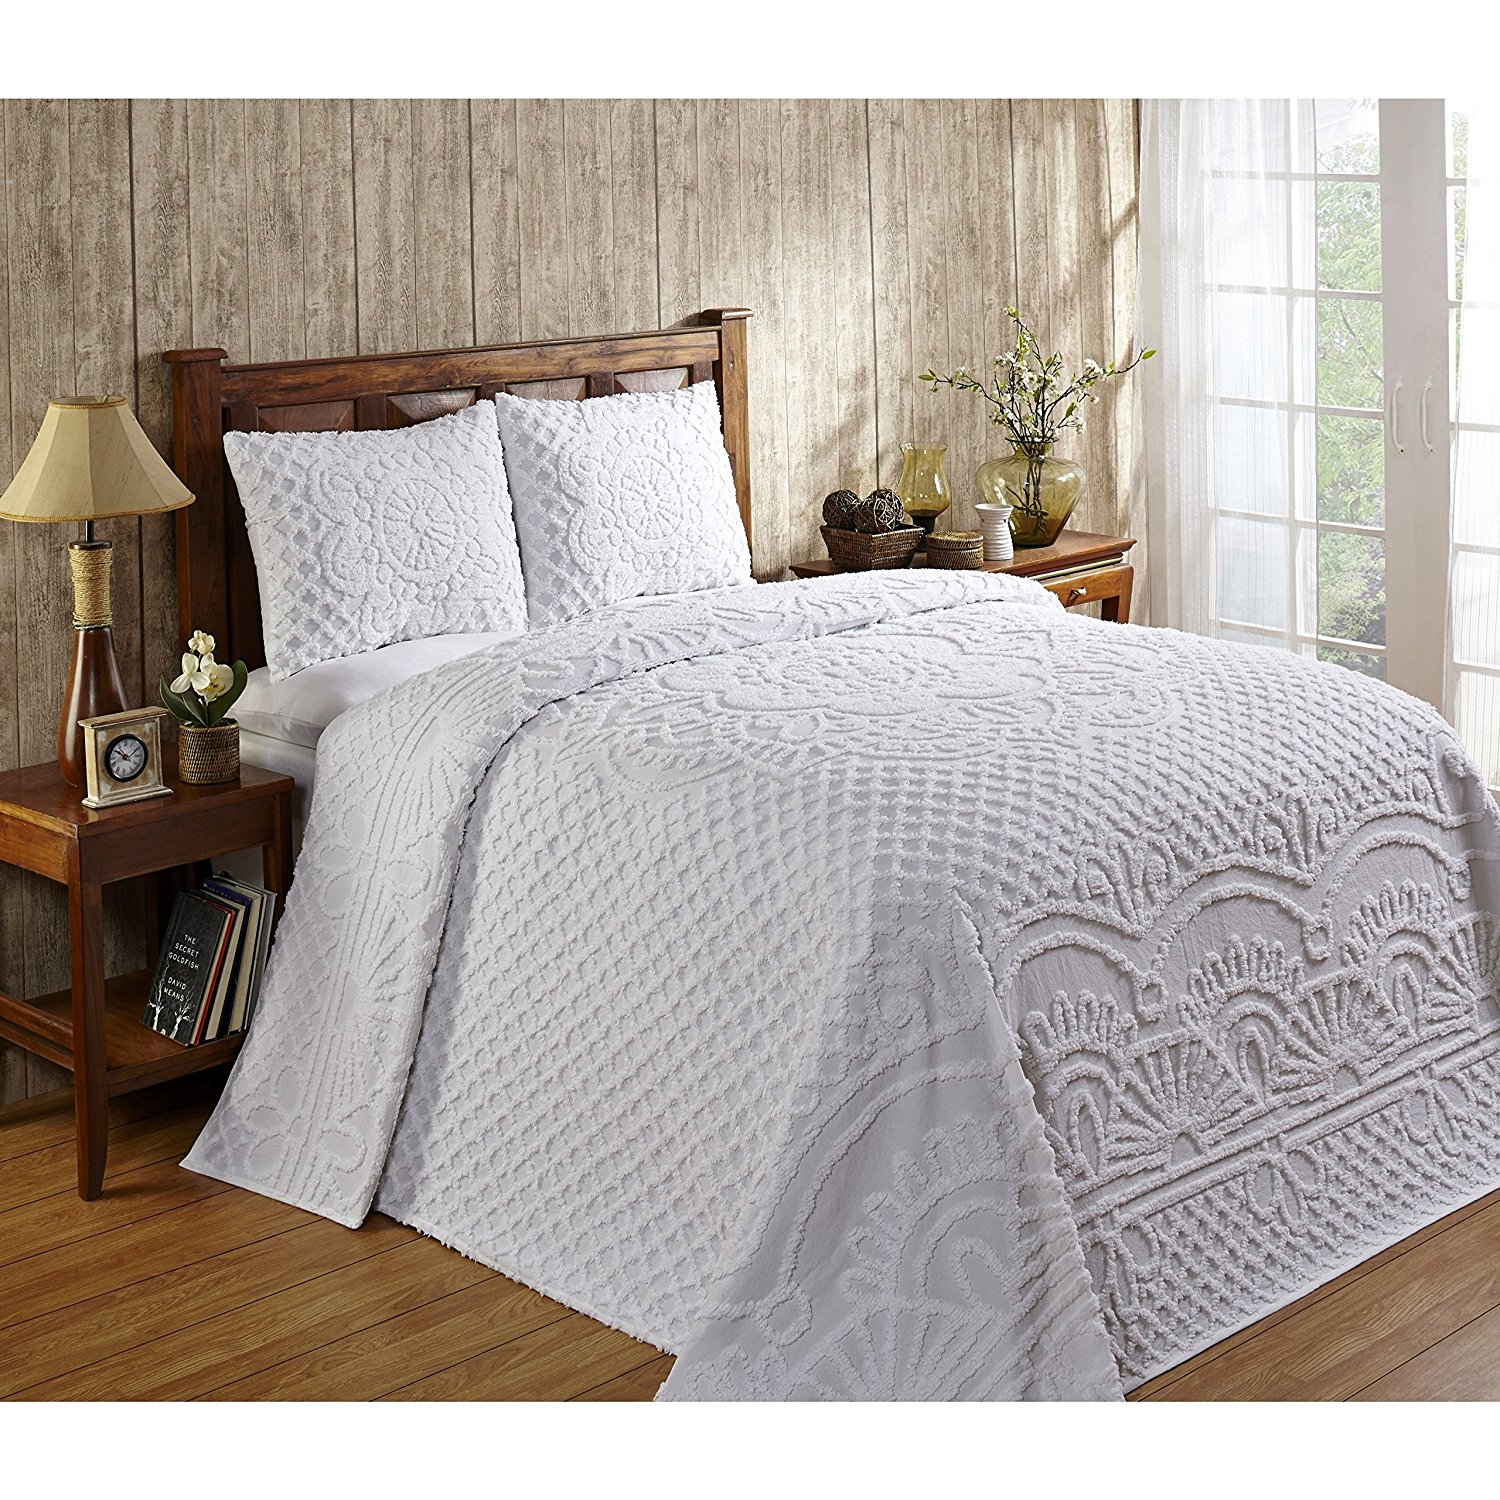 F&W 2 Piece White Chenille Geometric Tufted Pattern Bedspread Twin Set, Elegant High-Class Luxurious Rich Motif Textured Design, Reversible Bedding, Shabby Chic Country Style, Natural Color, Unisex